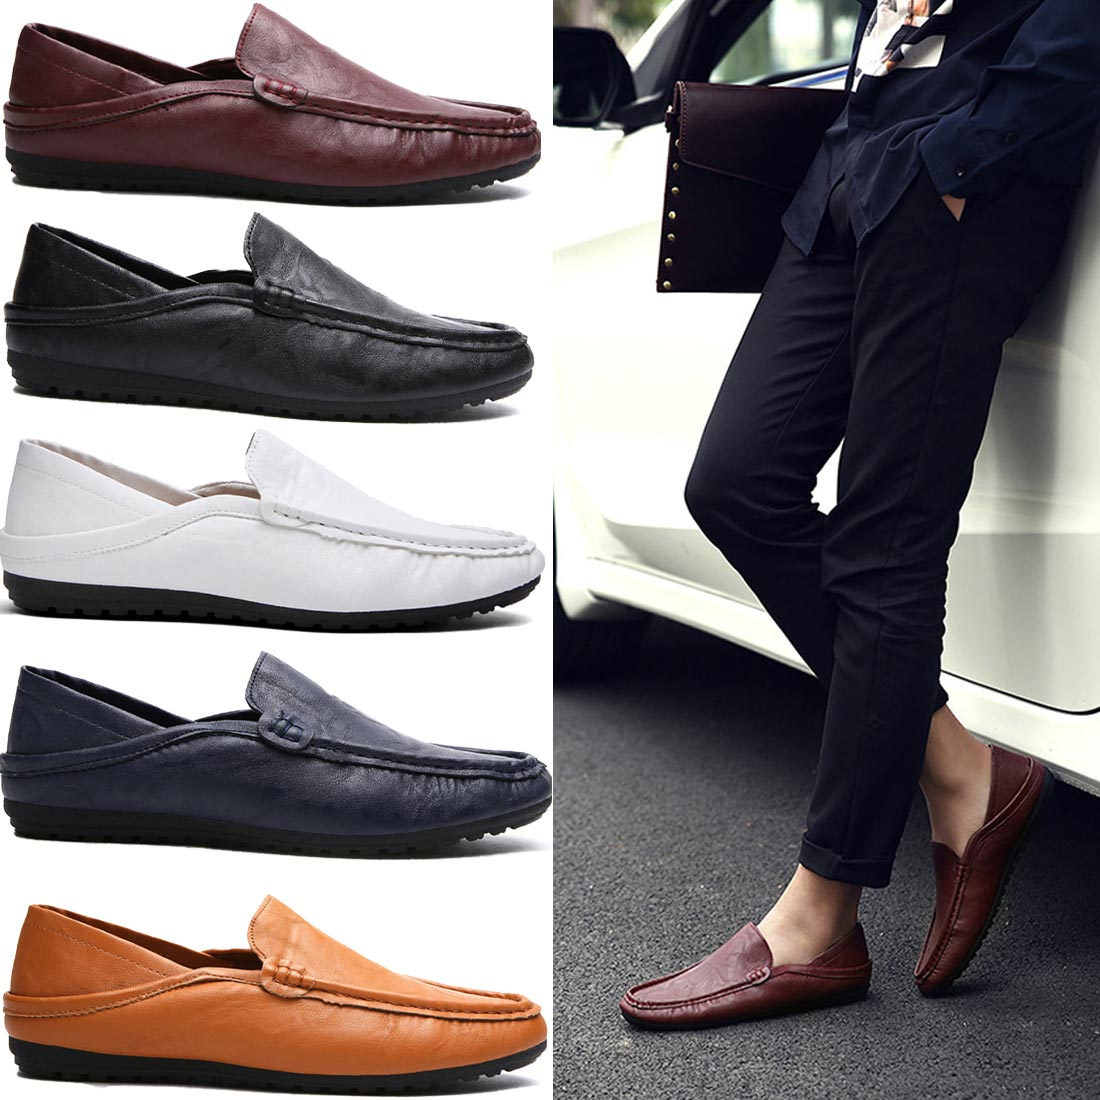 Men's Loafers - Height Increase Loafers Shoes